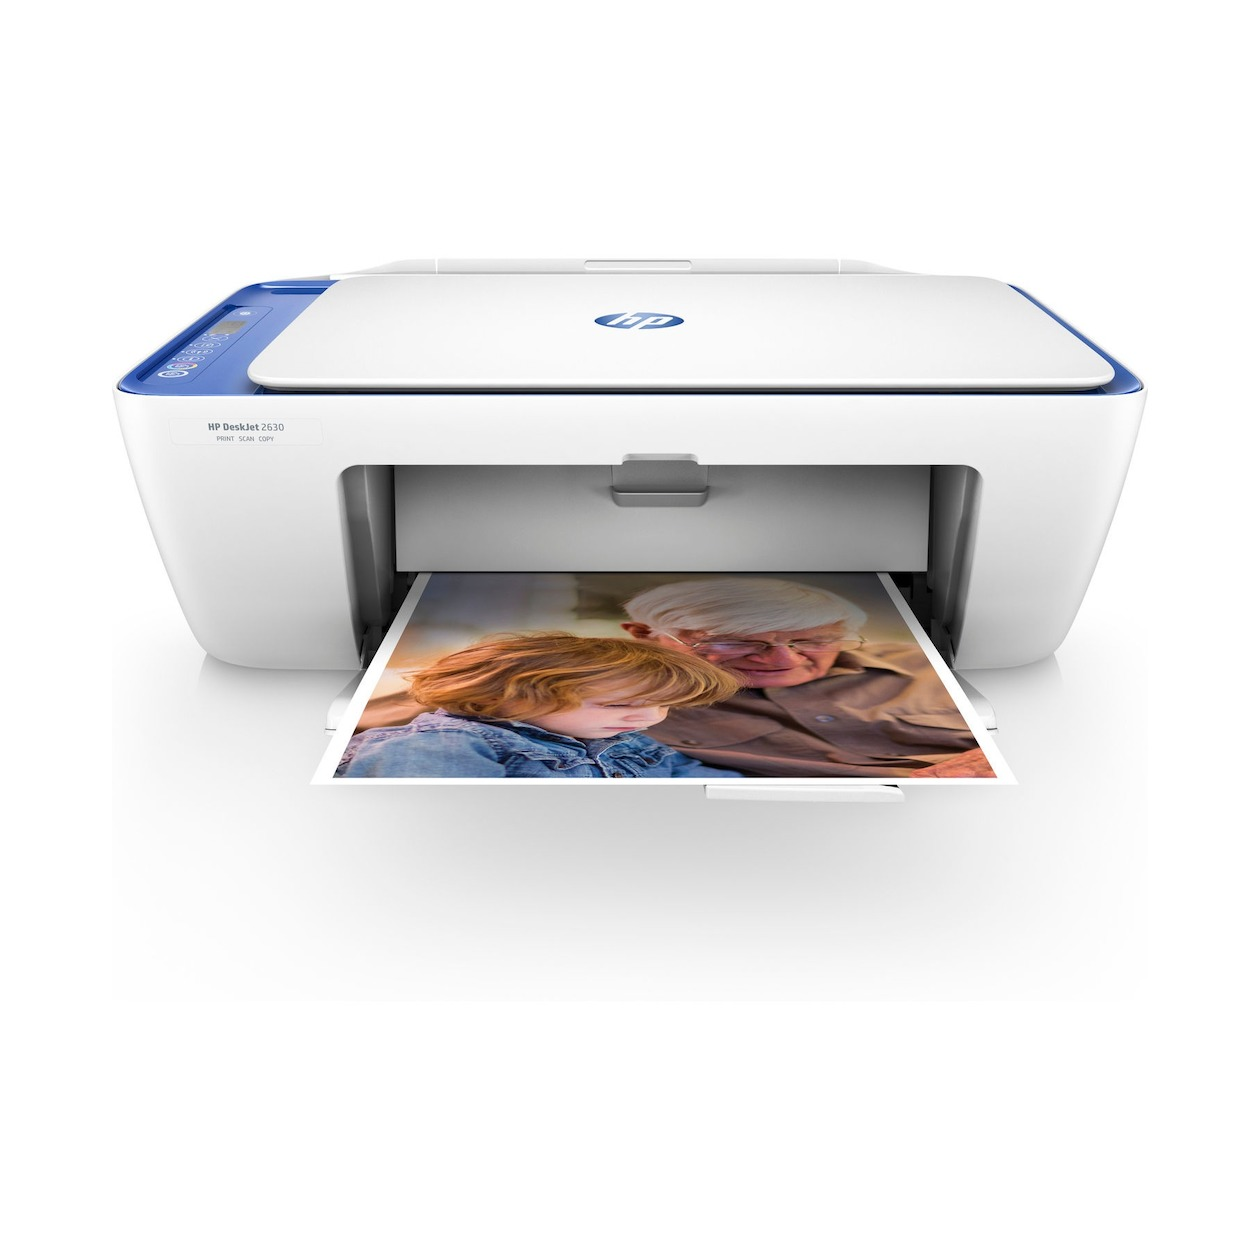 HP all-in-one inkjet printer DeskJet 2630